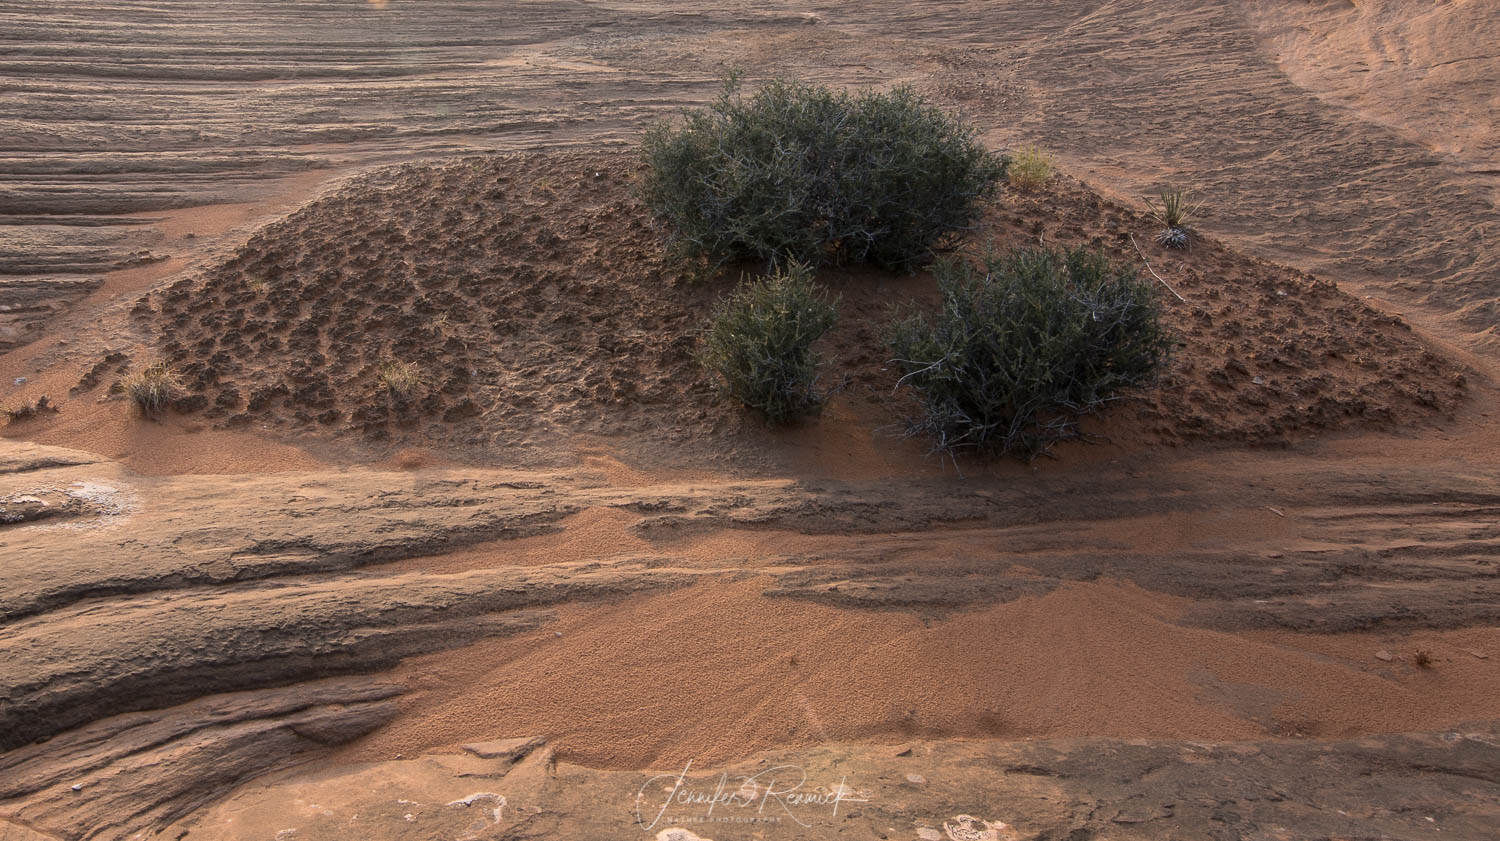 Many desert environments house cryptobiotic soils. These delicate soils take hundreds of years to grow, and one step or tripod hole can cause damage that will equally takes as long to heal.